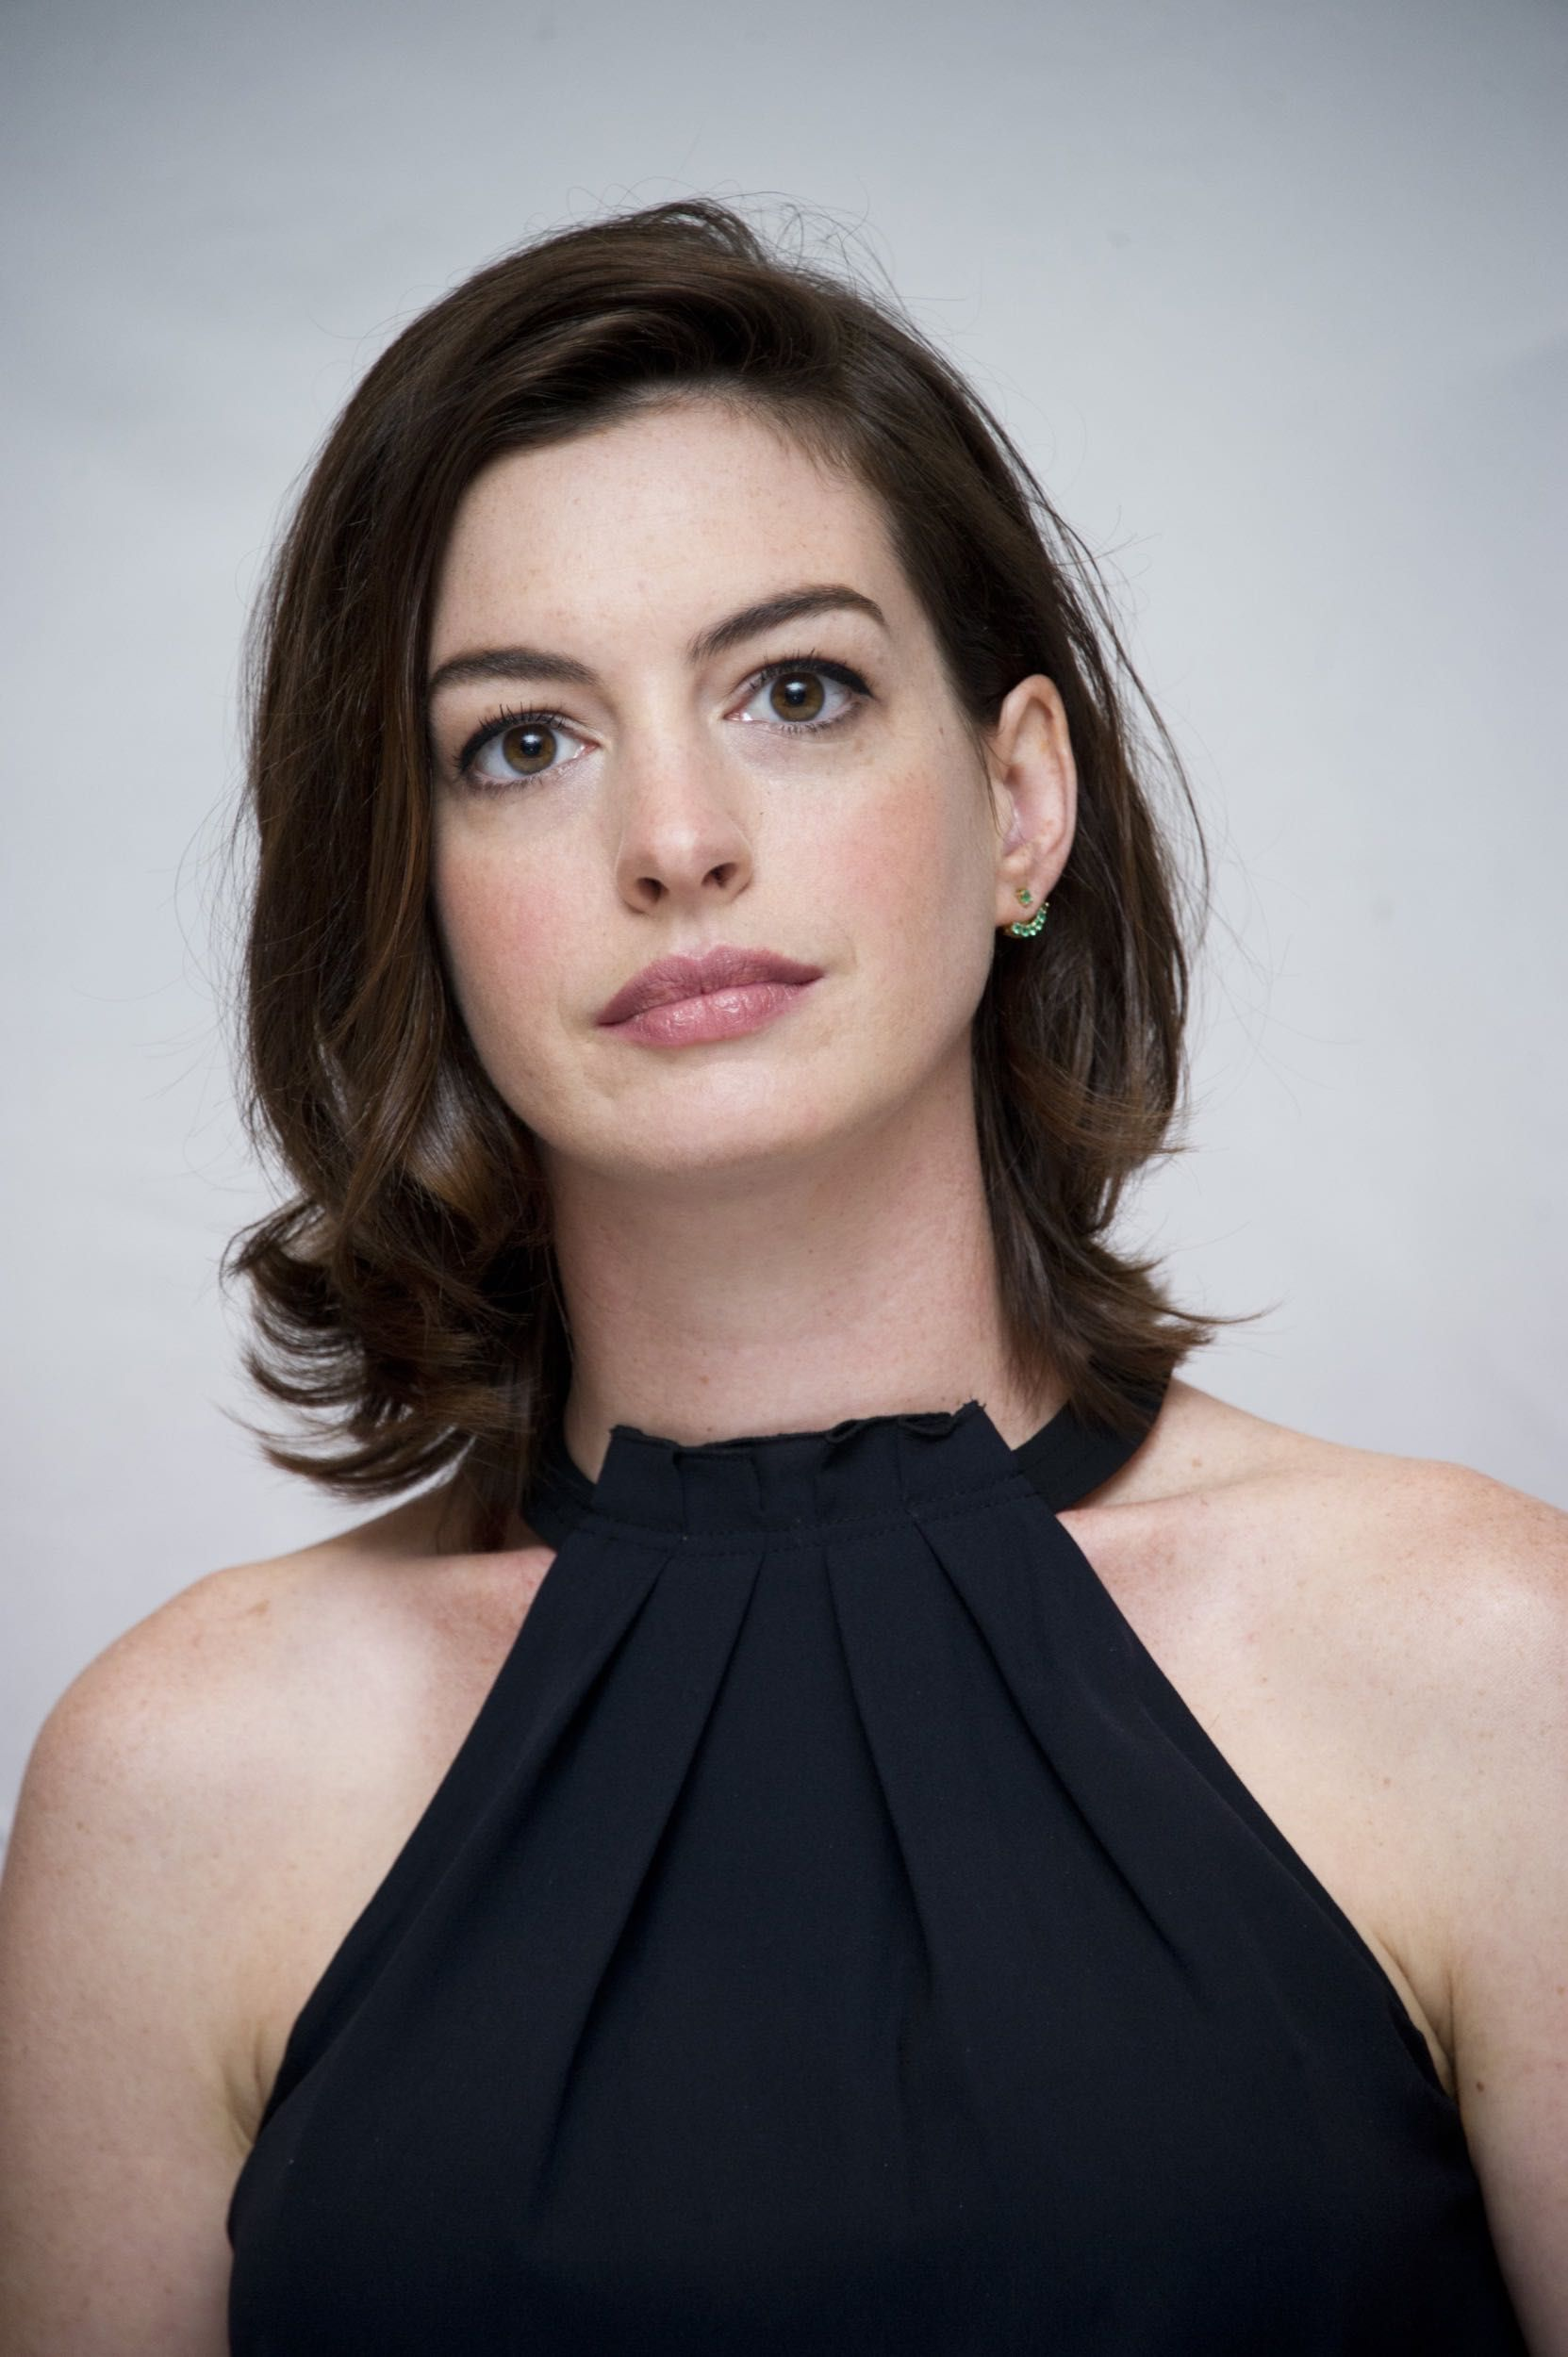 Celebrites Anne Hathaway naked (51 photos), Ass, Sideboobs, Twitter, cameltoe 2006